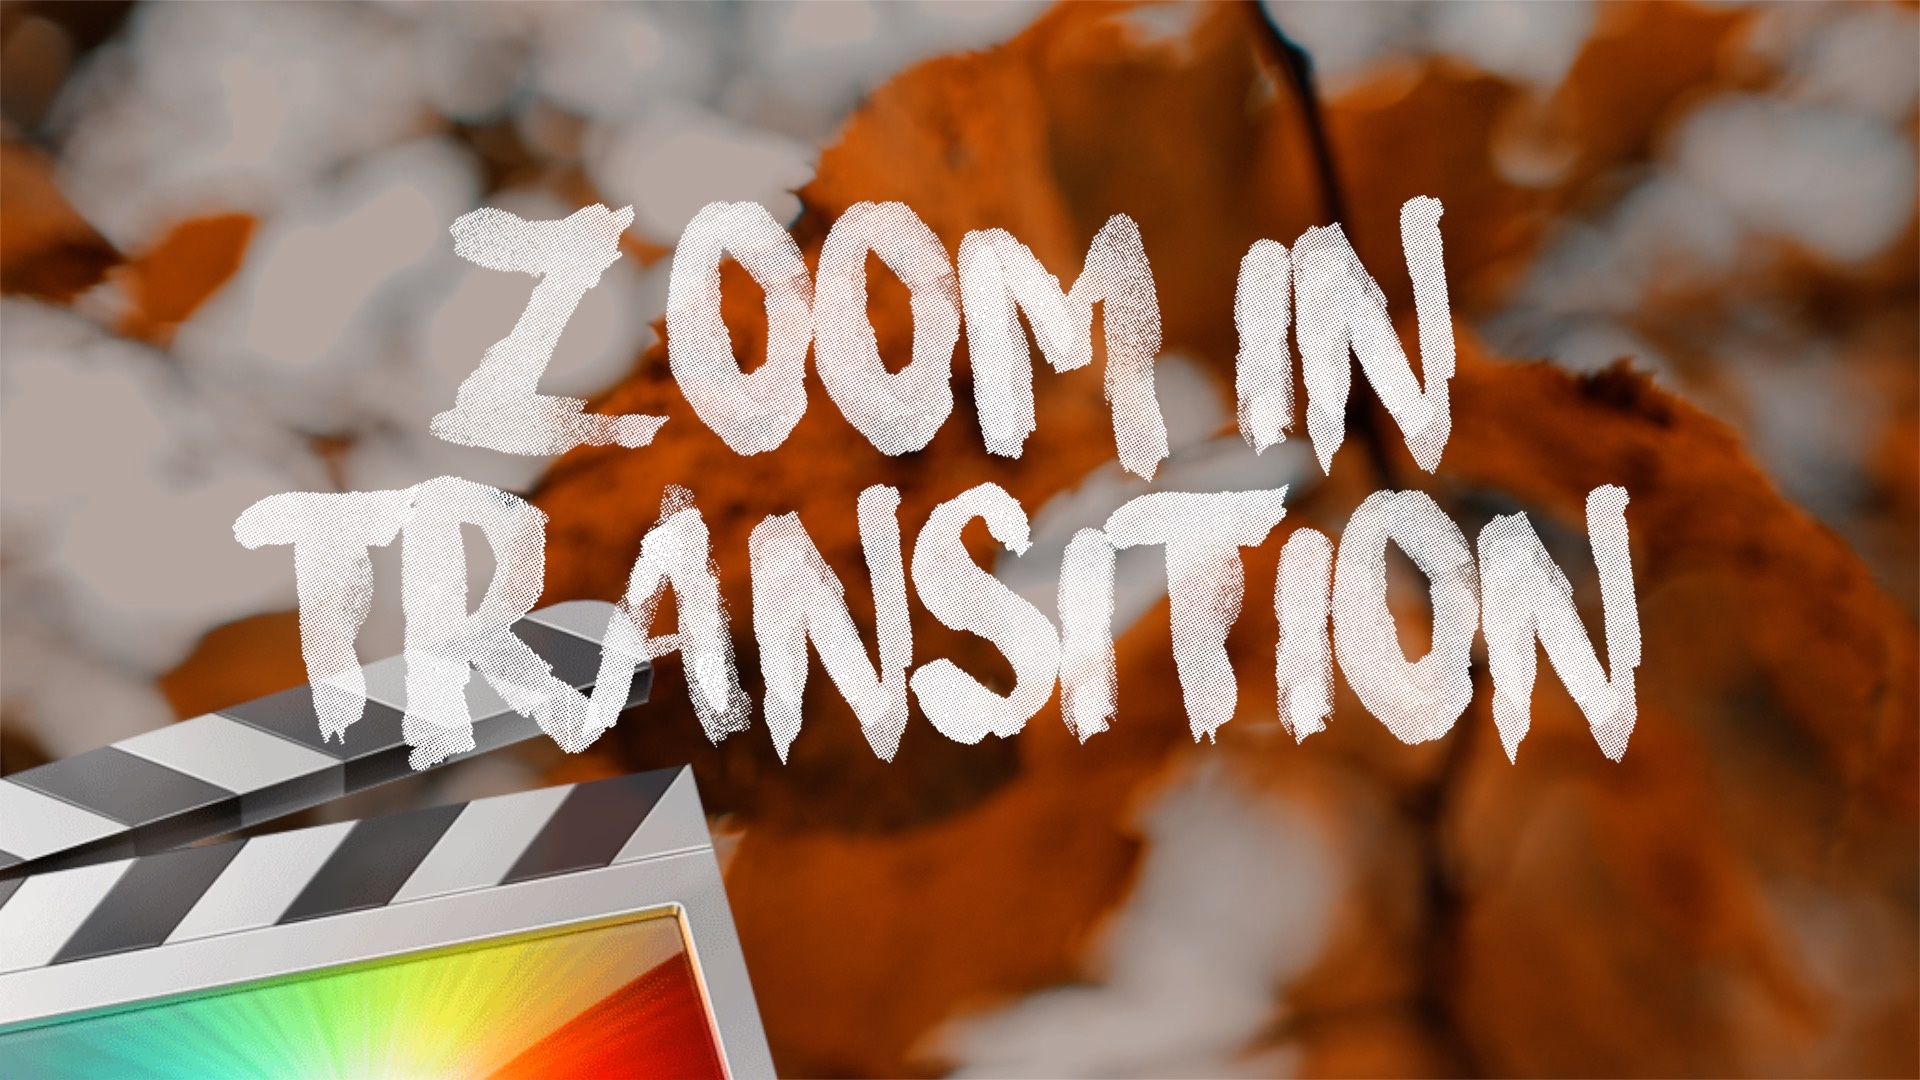 Zoom In Transition Final Cut Pro X Ryan Nangle